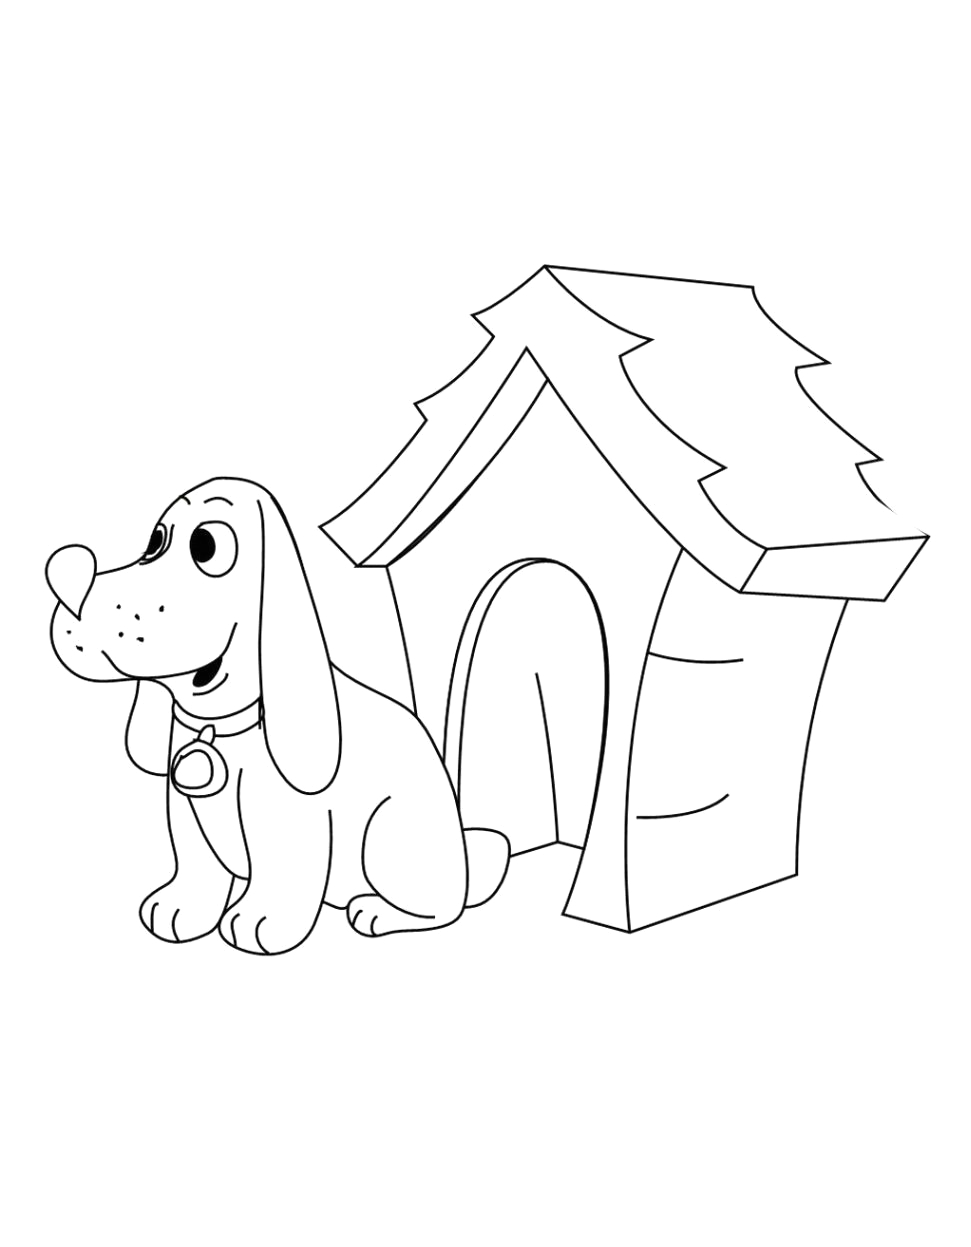 Coloring Pages Of Animals and their Homes Animal Homes Coloring Pages Google Search